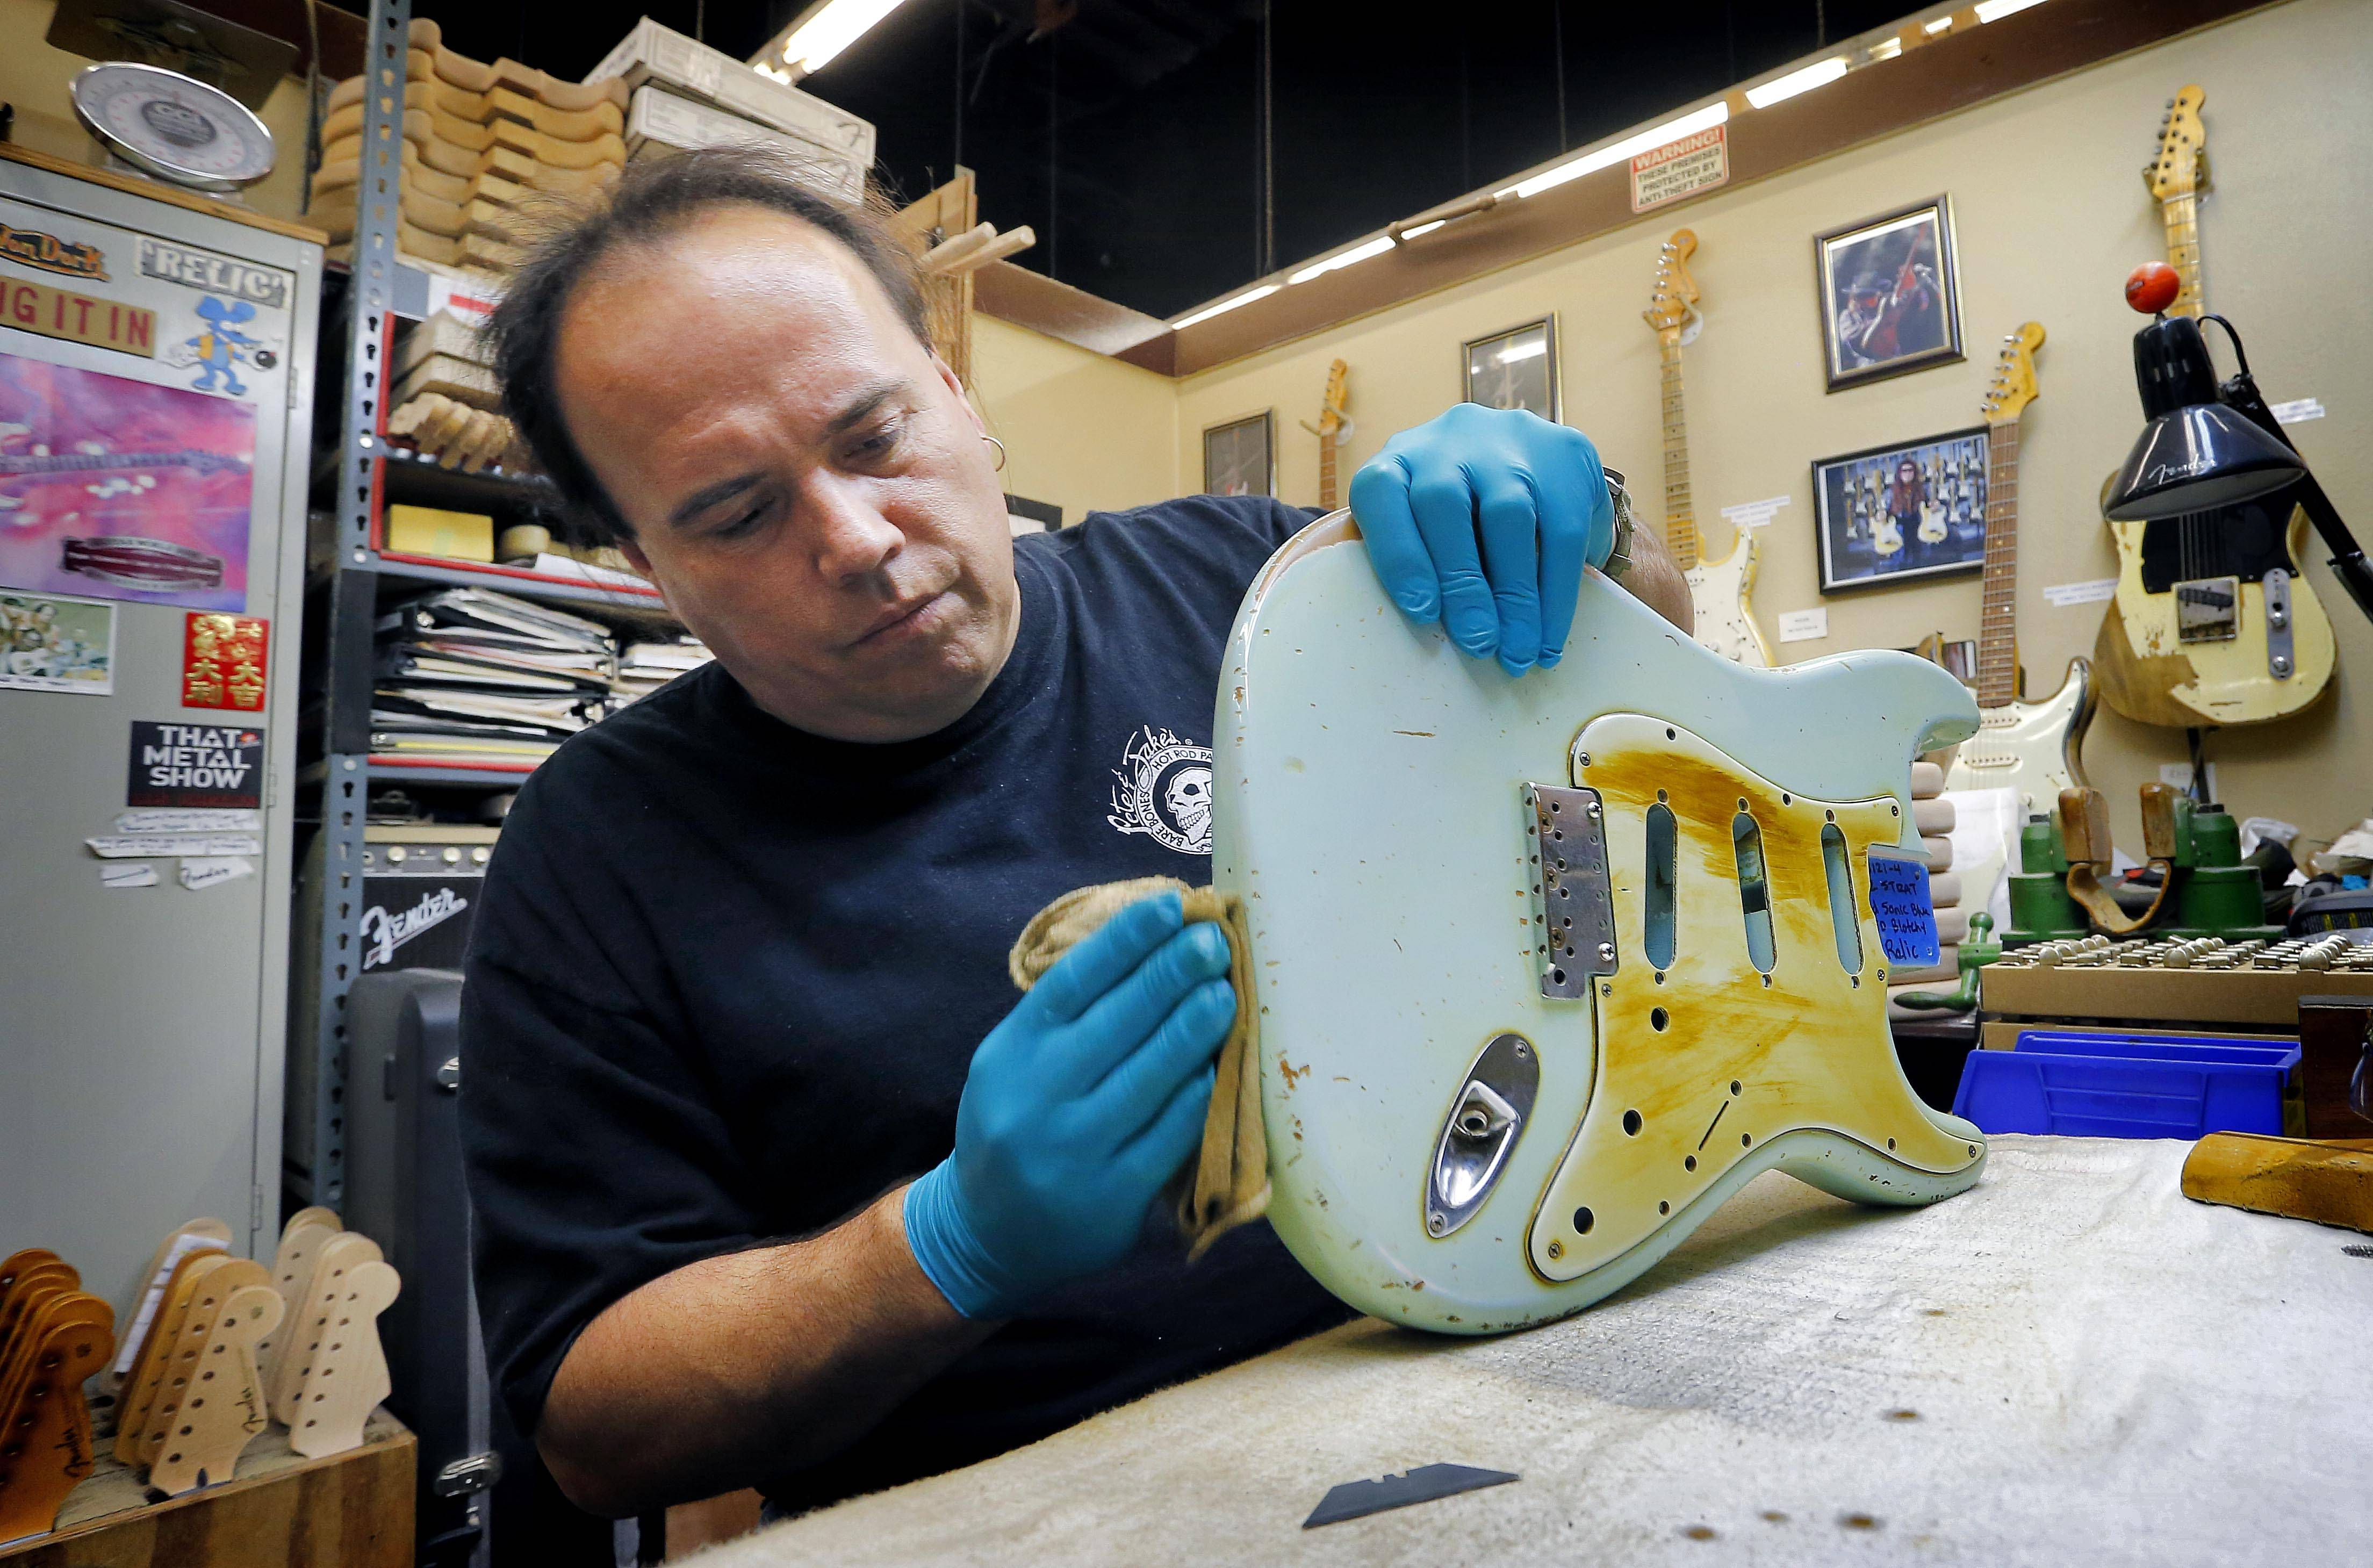 Fender Custom Shop Master Builder John Cruz works on a heavily-used Fender Stratocaster body at the Fender factory in Corona, Calif. Leo Fender developed the instrument in a small workshop in Fullerton, Calif. six decades ago.